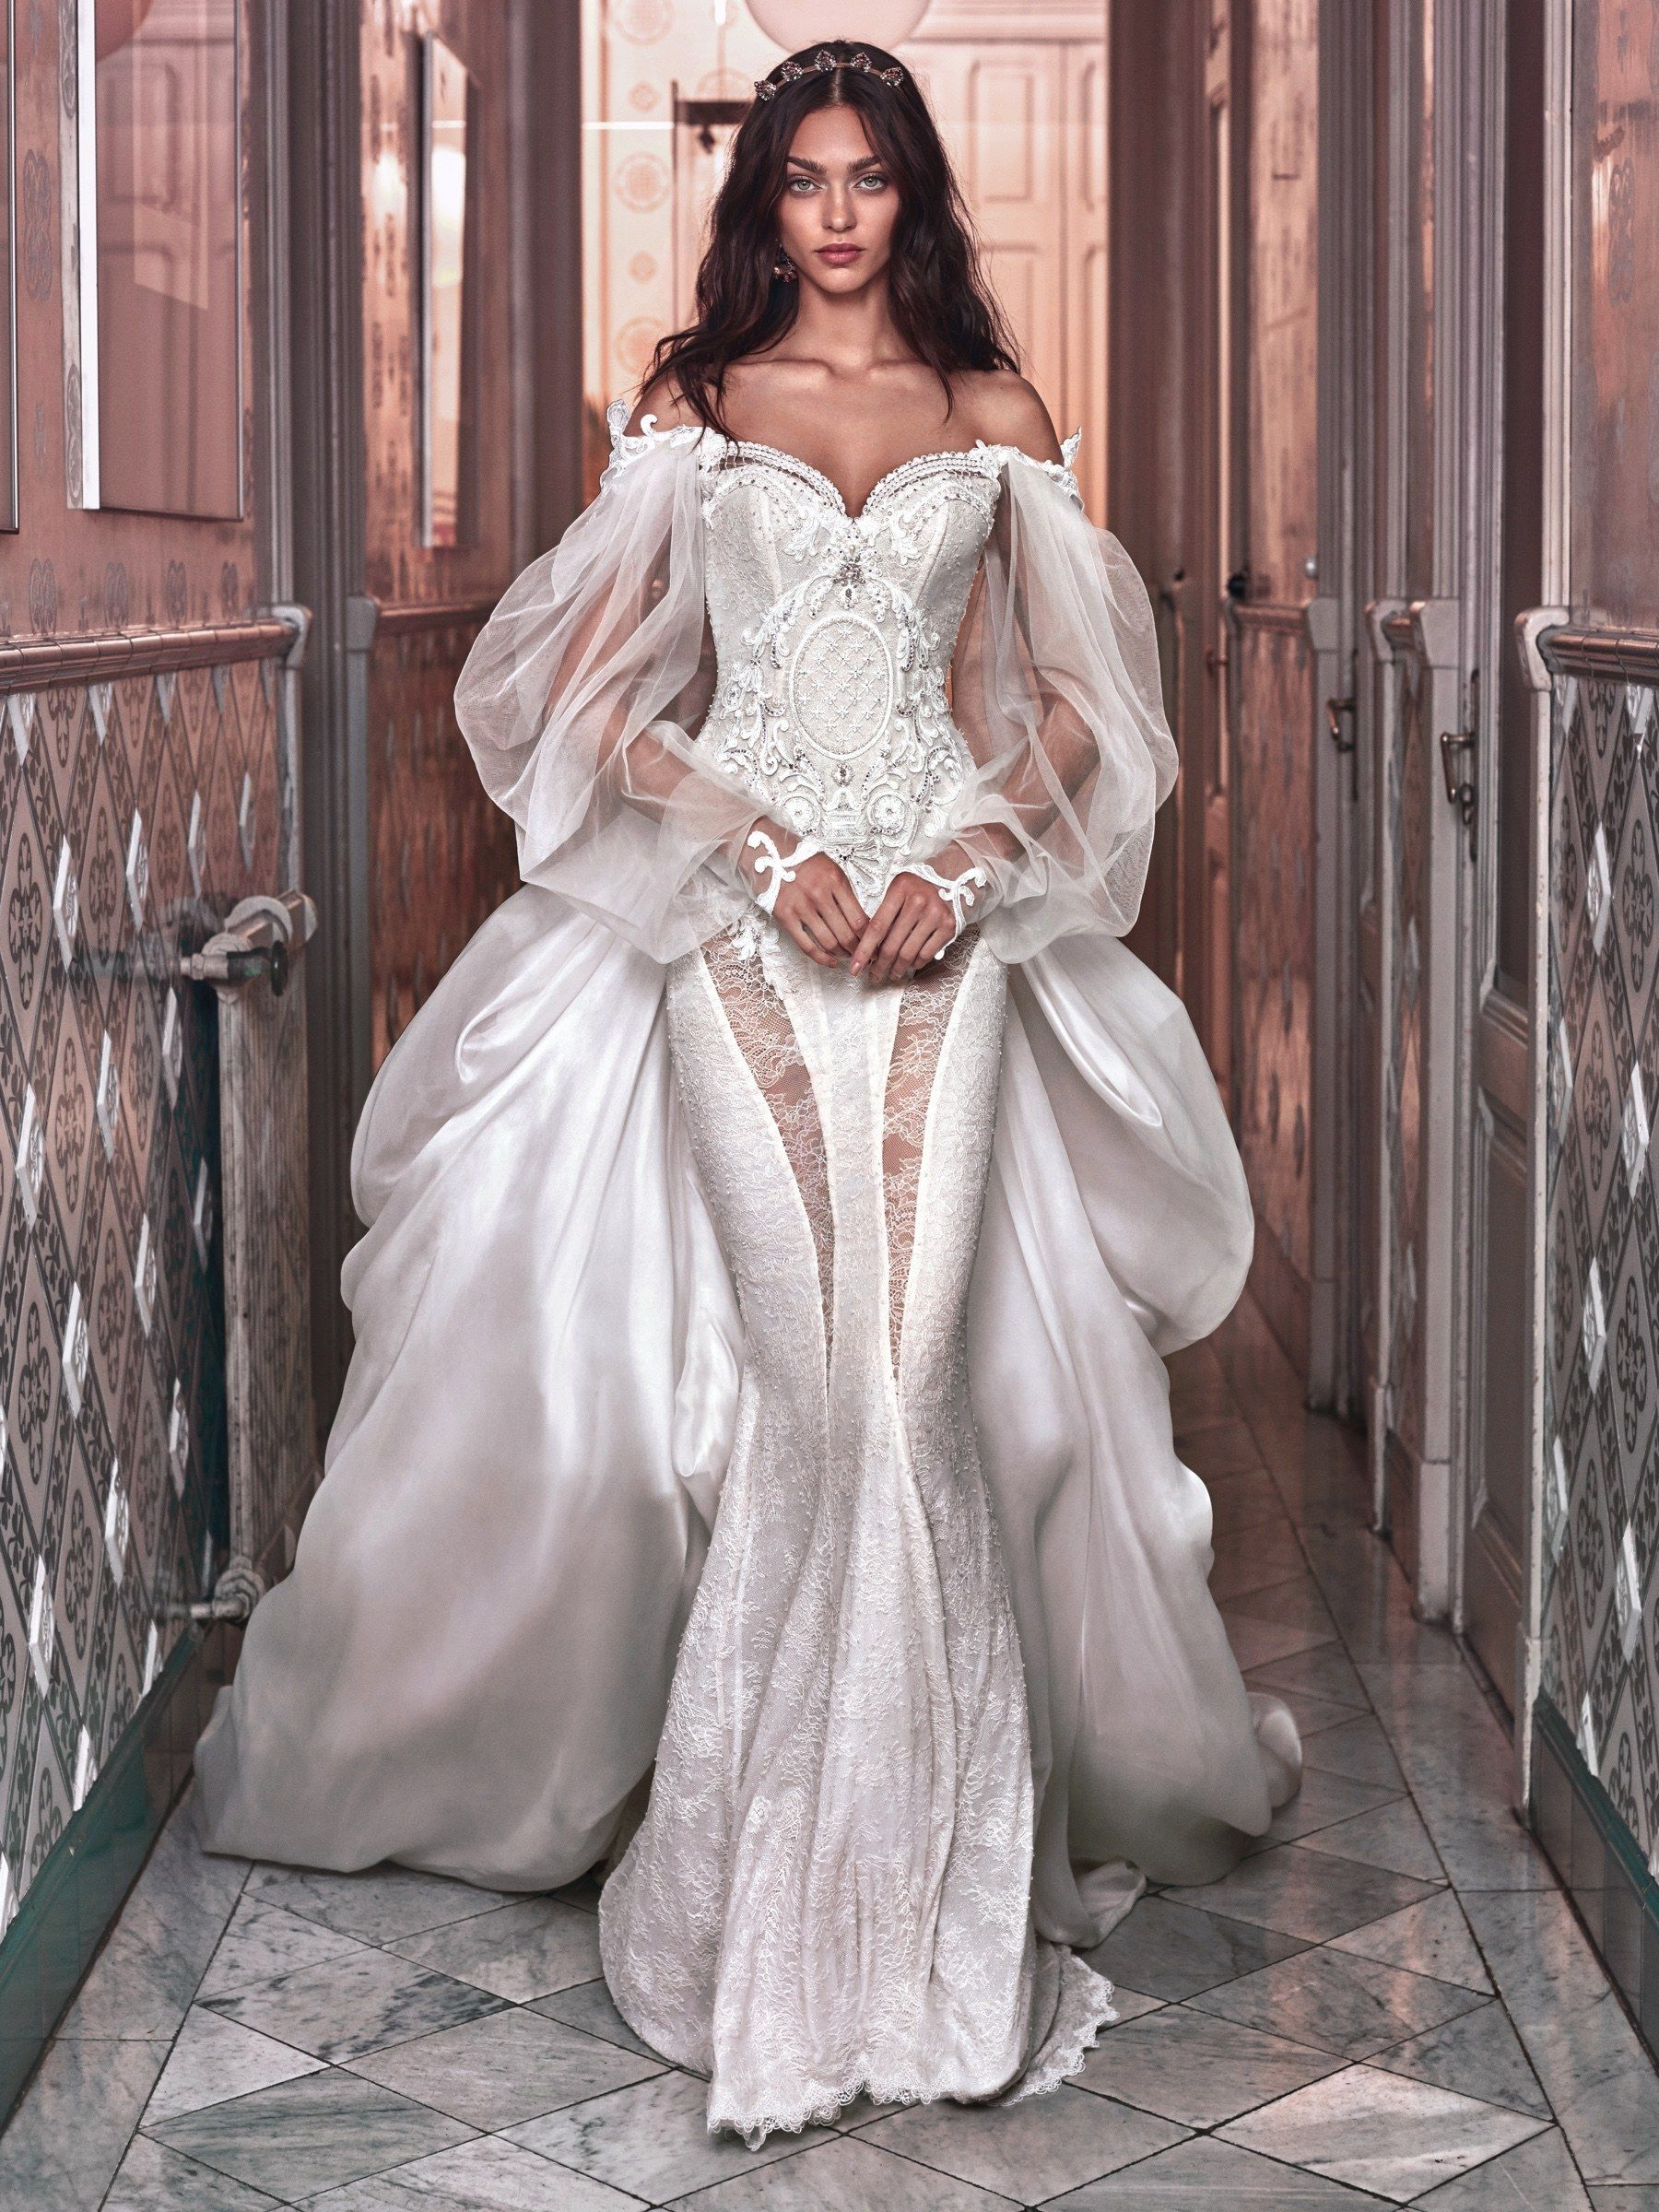 This Is the 12,000 Wedding Dress Beyoncé Wore to Renew